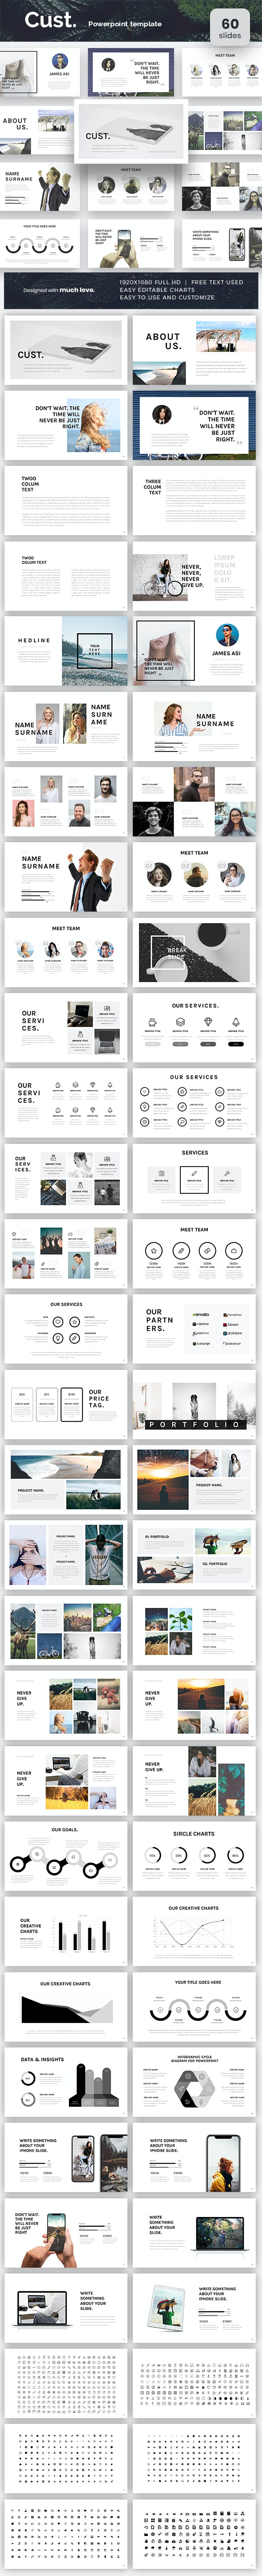 Cust Powerpoint Presentation Template - PowerPoint Templates Presentation Templates